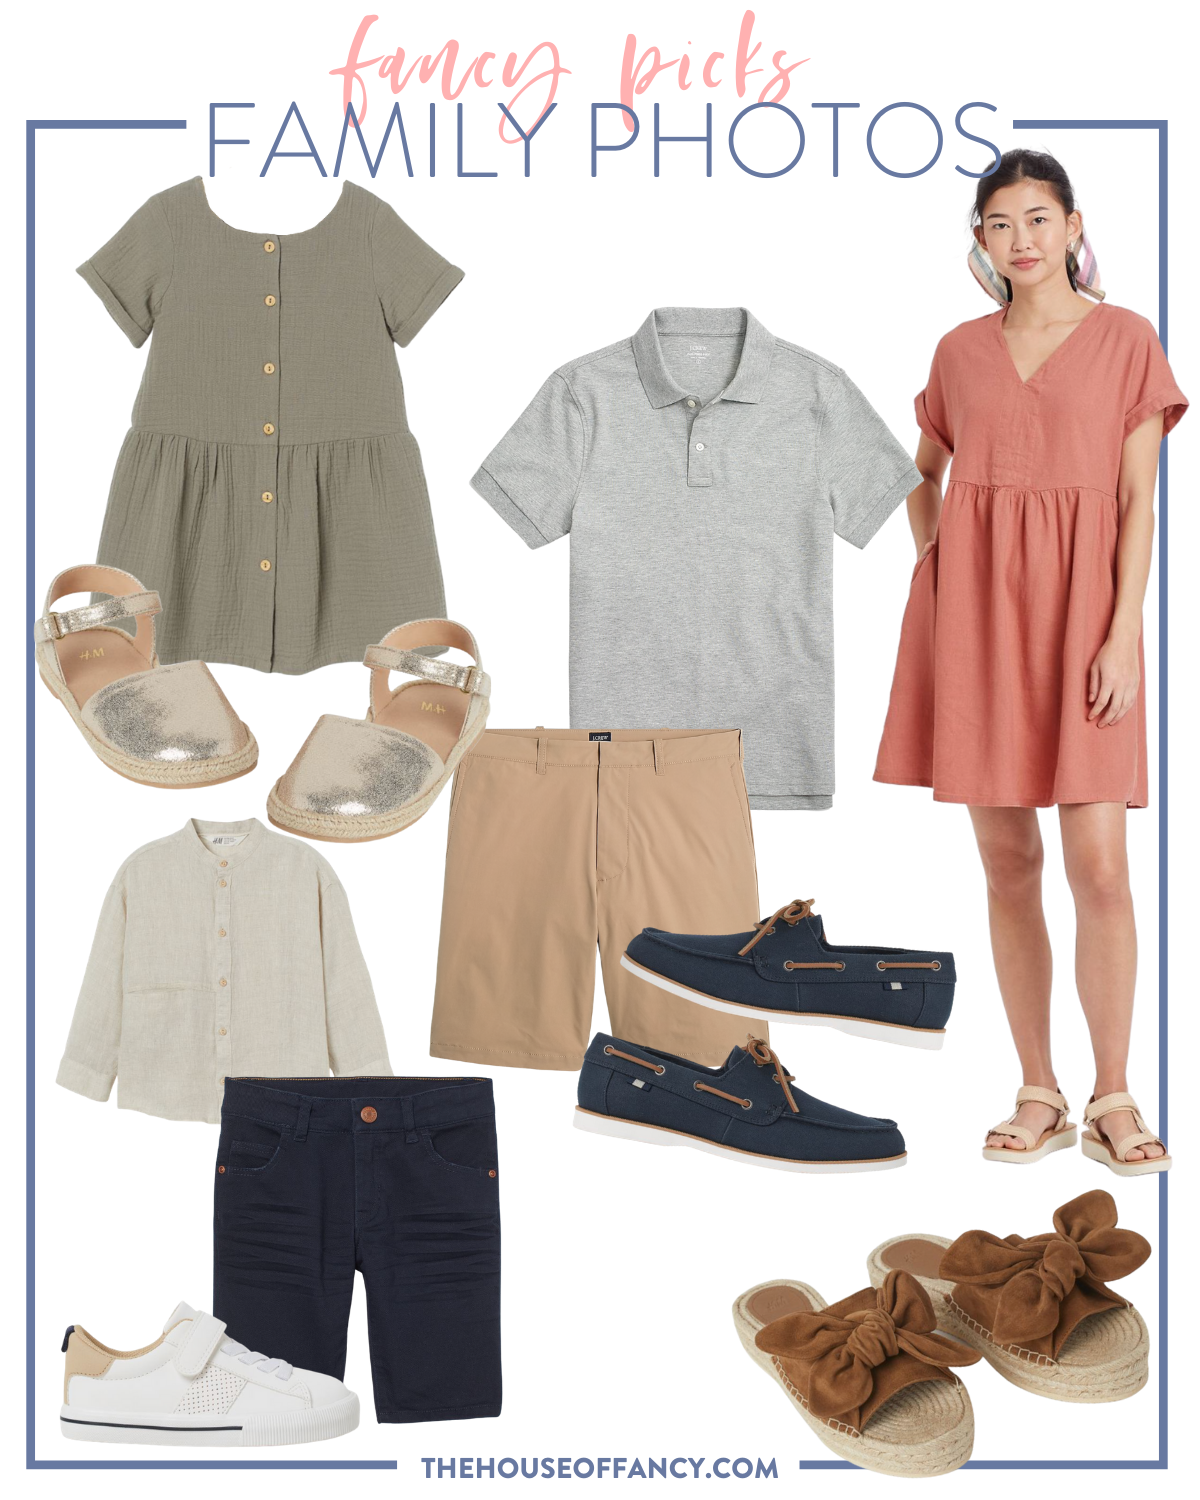 fancy Ashley family photo looks   Family Photo Outfits by popular Houston fashion blog, The House of Fancy: collage image of a olive green button front dress, grey polo shirt, gold espadrilles, tan shorts, red dress, blue loafers, tan linen shirt, blue shorts, white sneakers, and brown bow strap espadrilles.